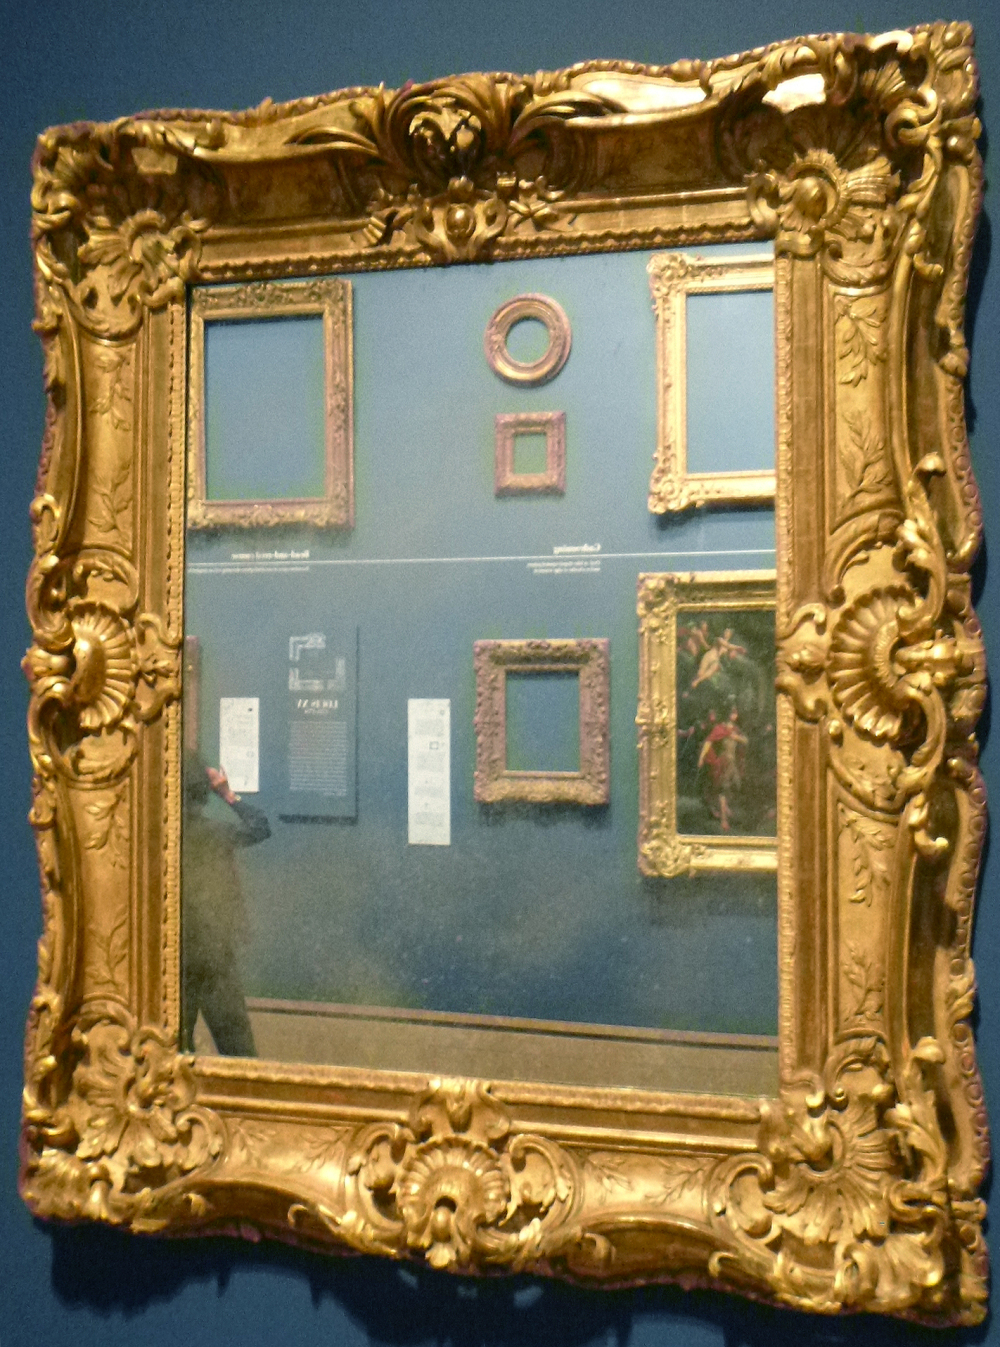 checc81rin-frame-c1770-getty-museum.jpg